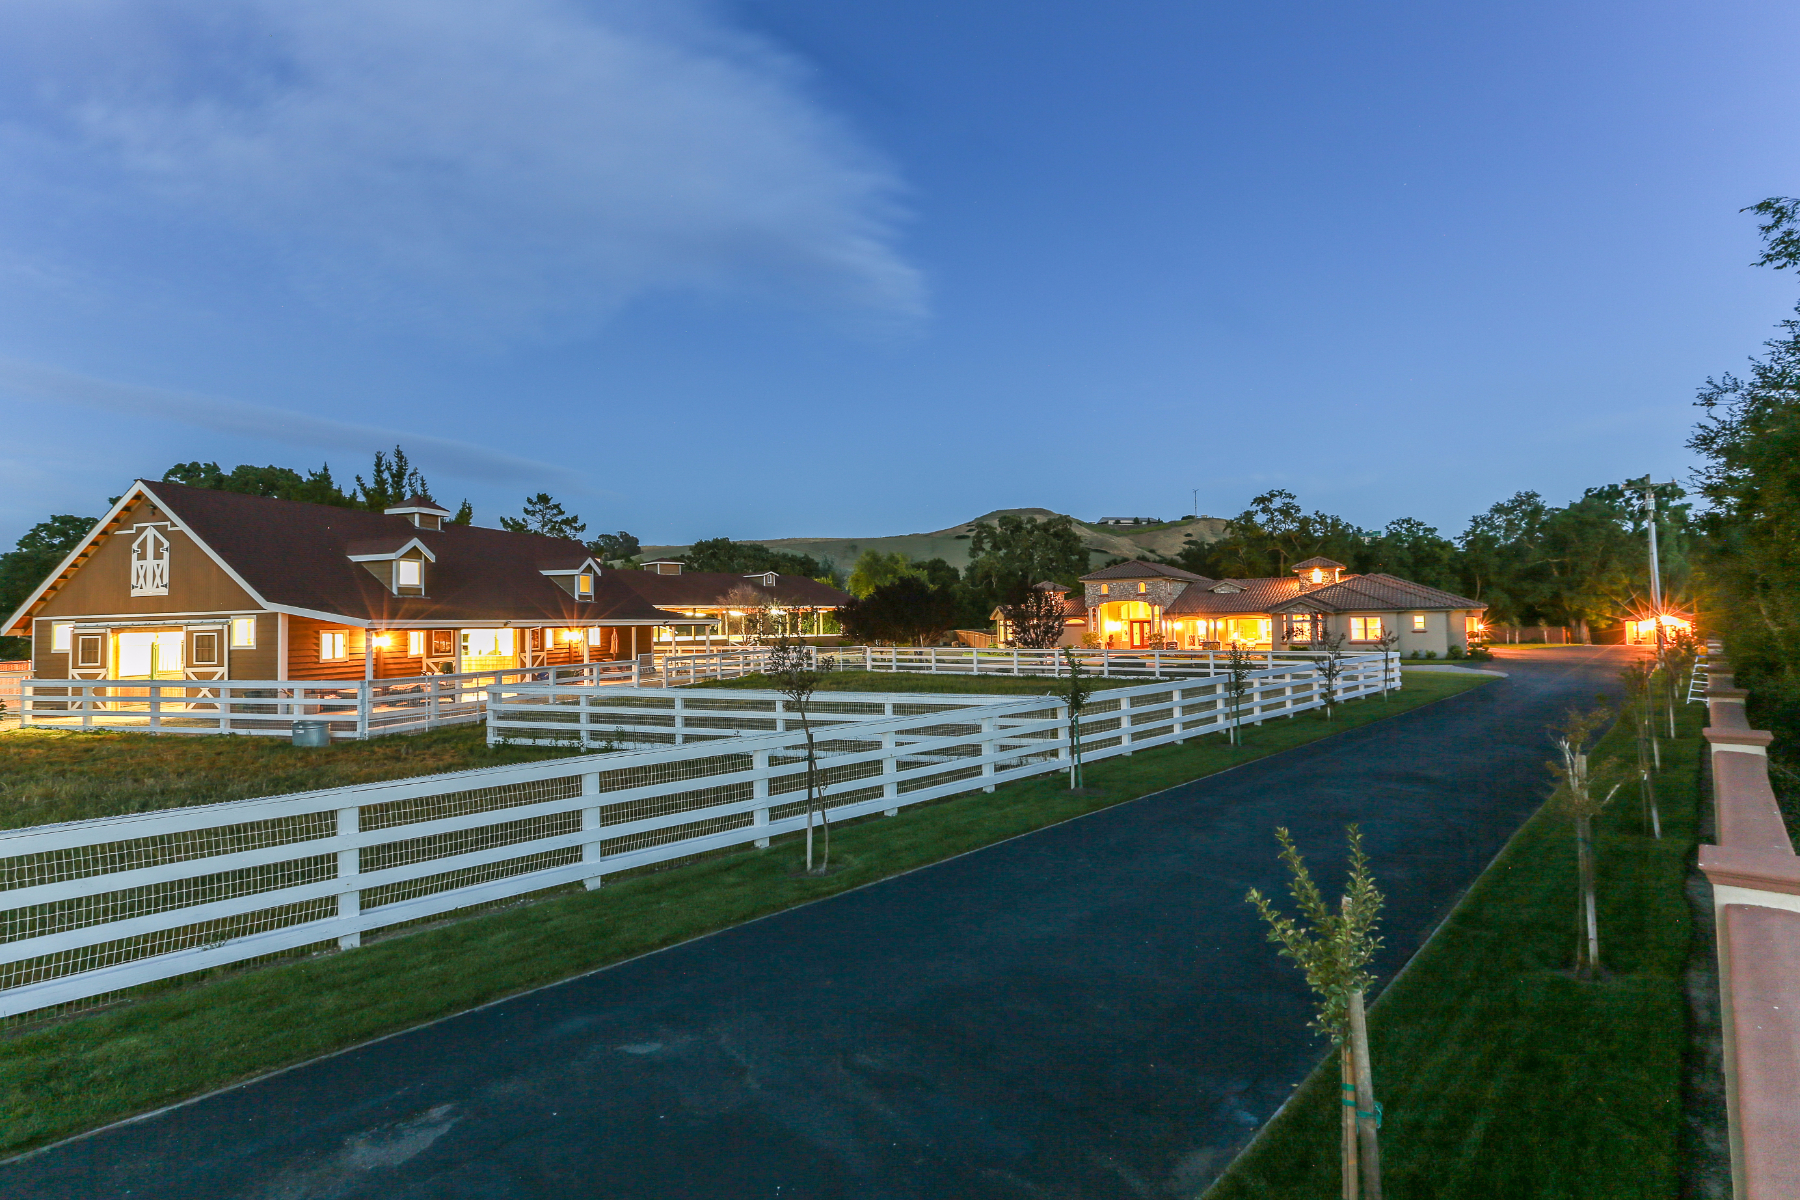 Single Family Home for Sale at Villa Bianchi an Impressive Equestrian Estate! 5530 Johnston Rd Danville, California 94506 United States